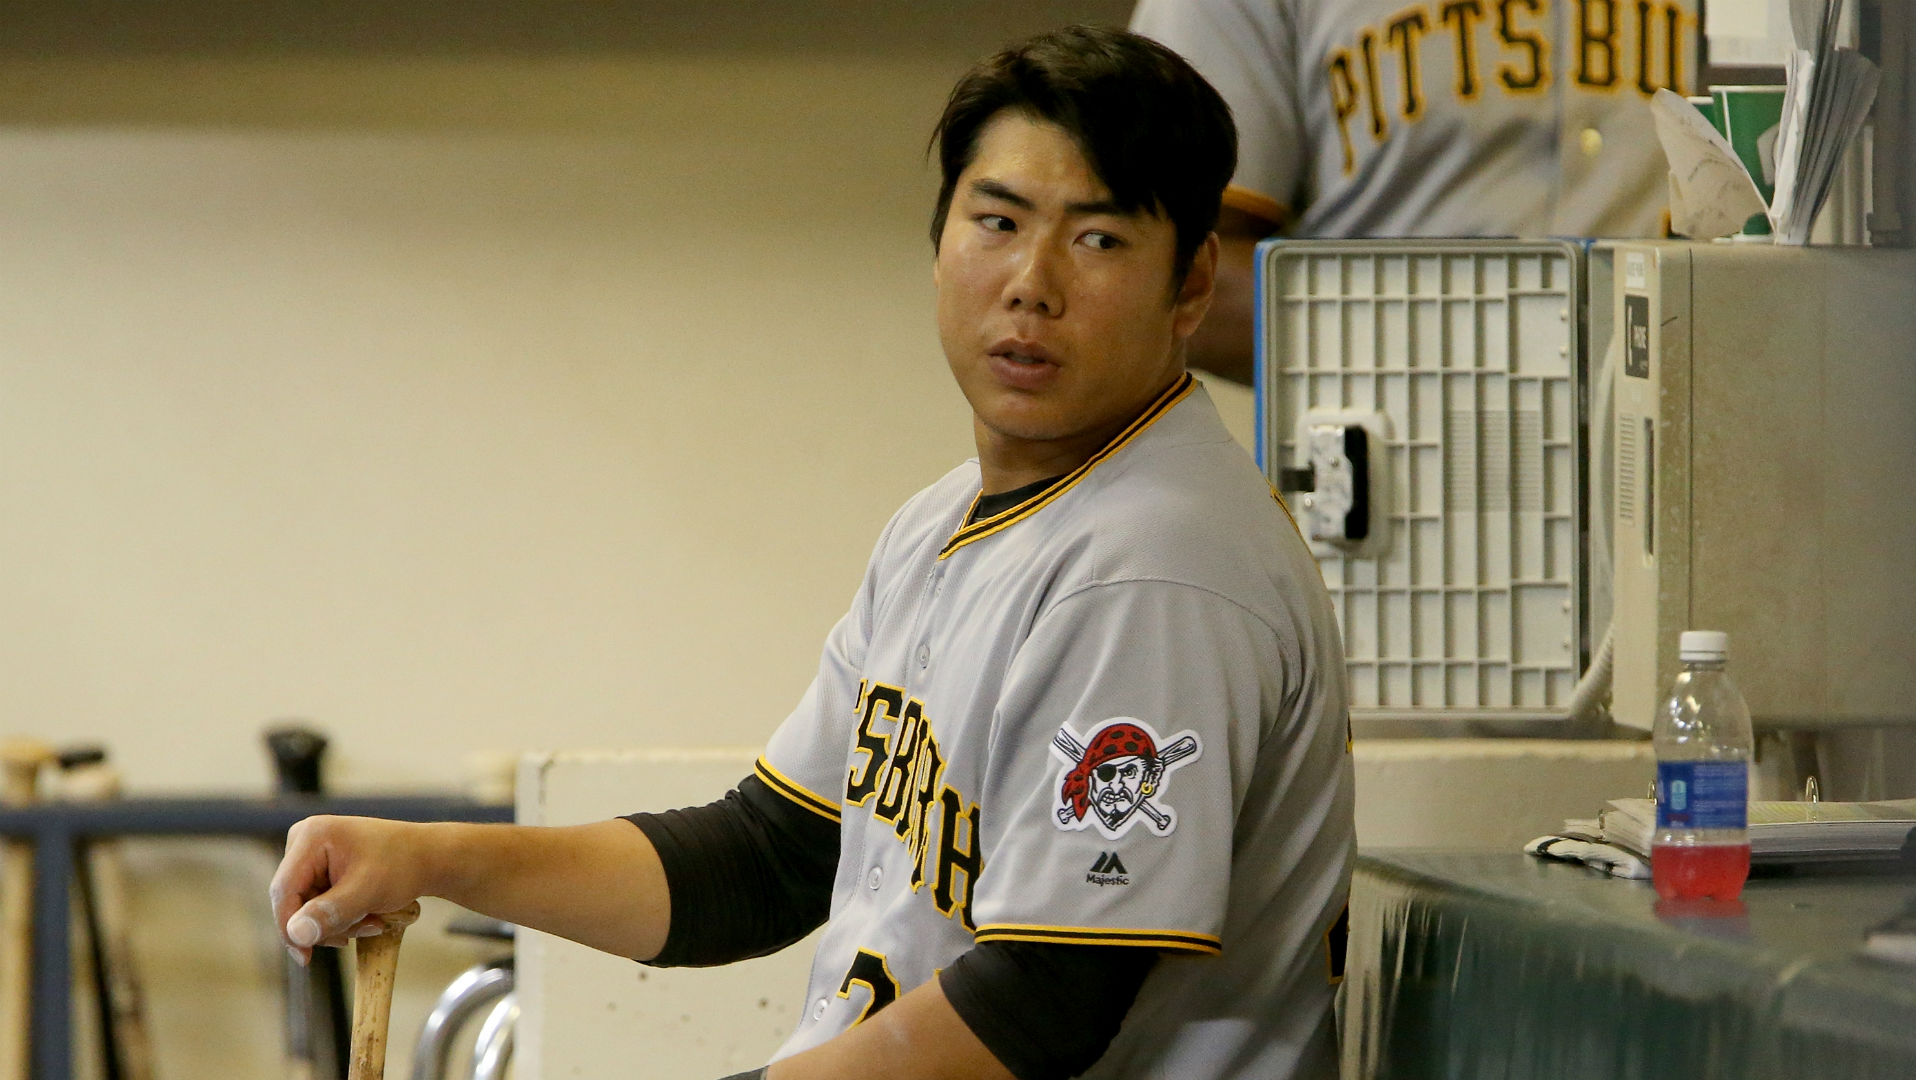 Pirates add Jung Ho Kang to 40-man roster, option him to Triple-A